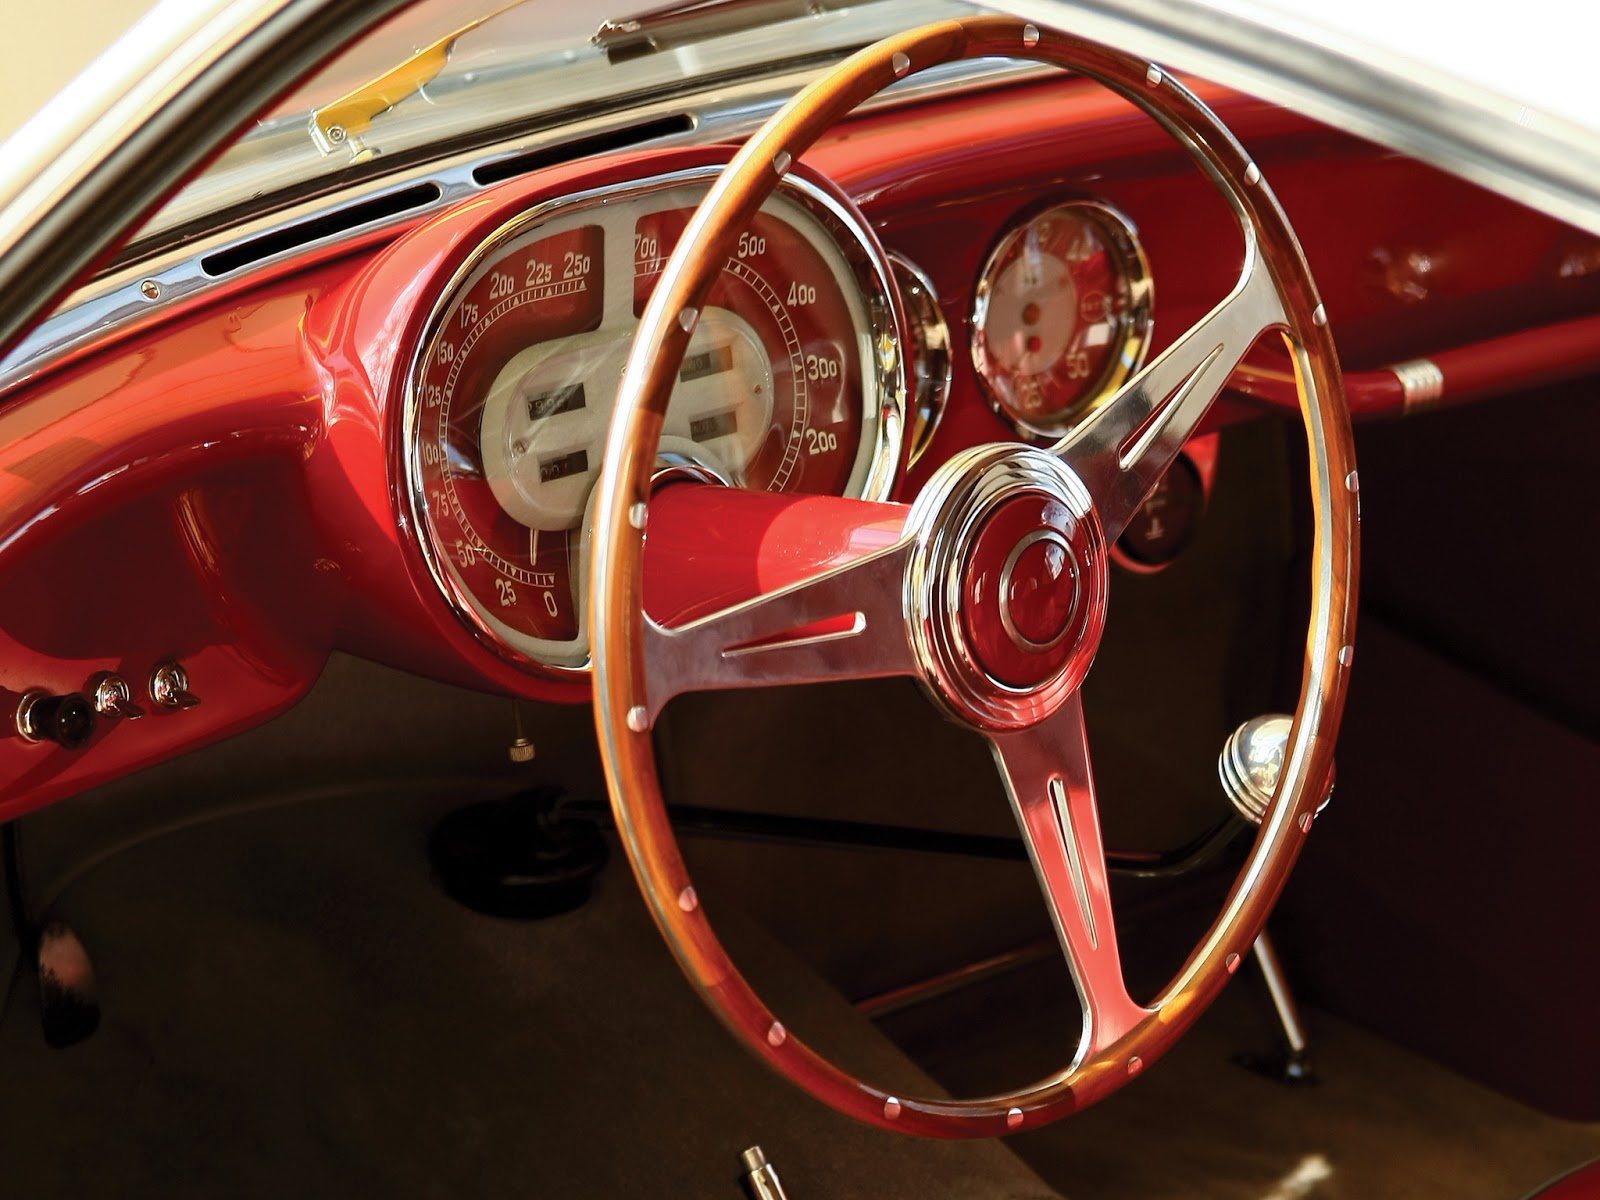 1956 chrysler boano auto shows car and driver - It Was Sold For 946 000 At The 2014 Rm Auctions Conceptcarz Com Wikipedia